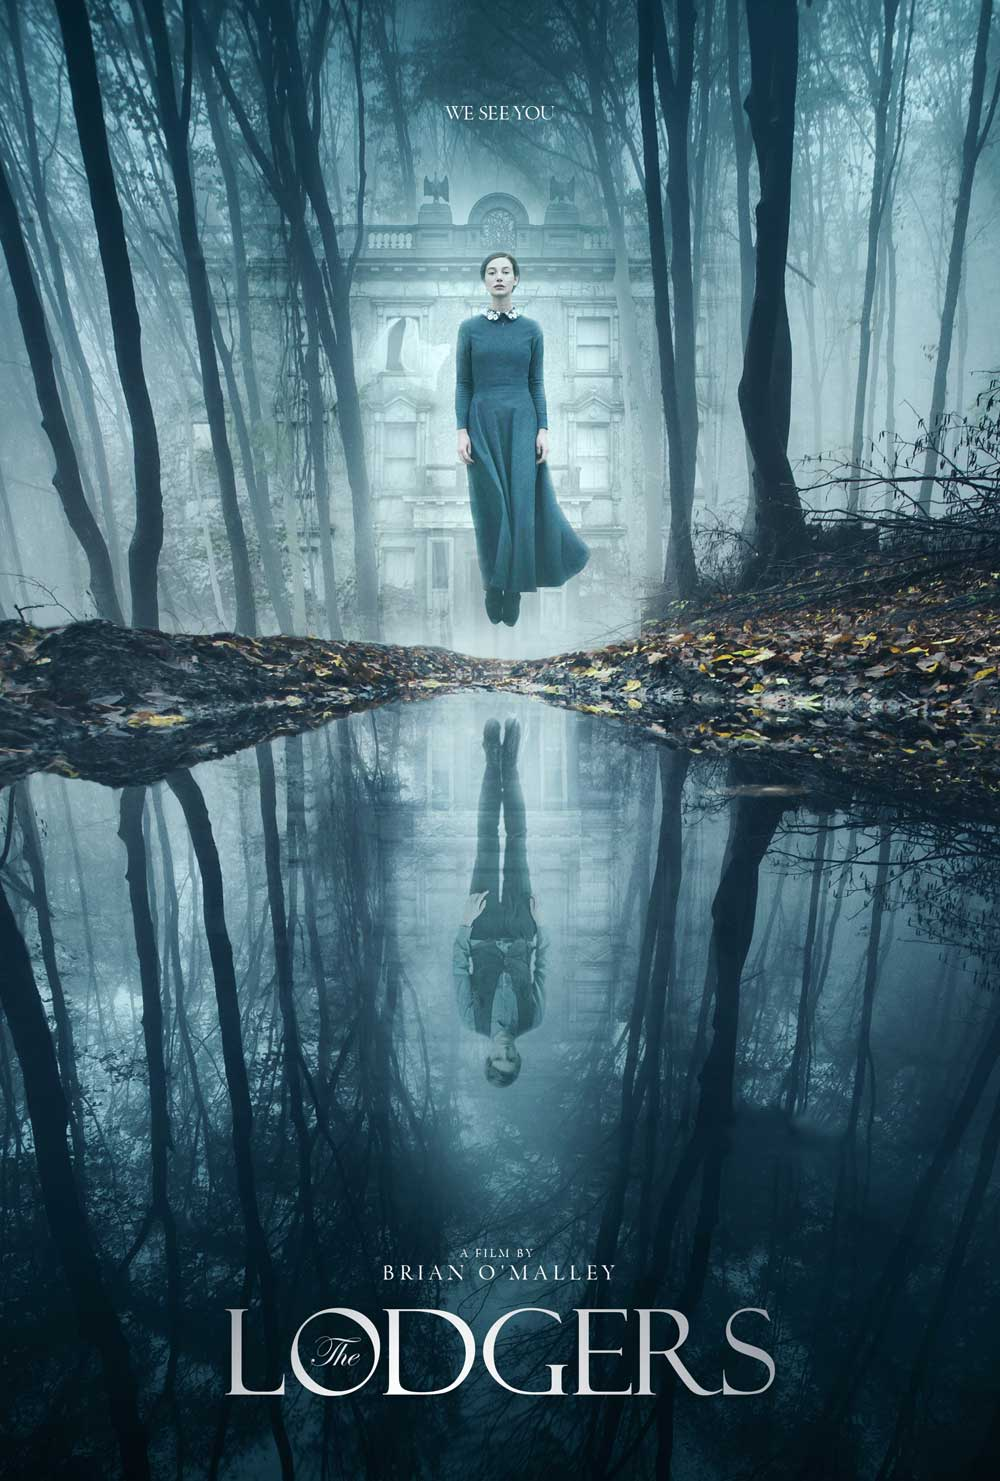 spooky-trailer-for-an-gothic-irish-horror-thriller-the-lodgers11